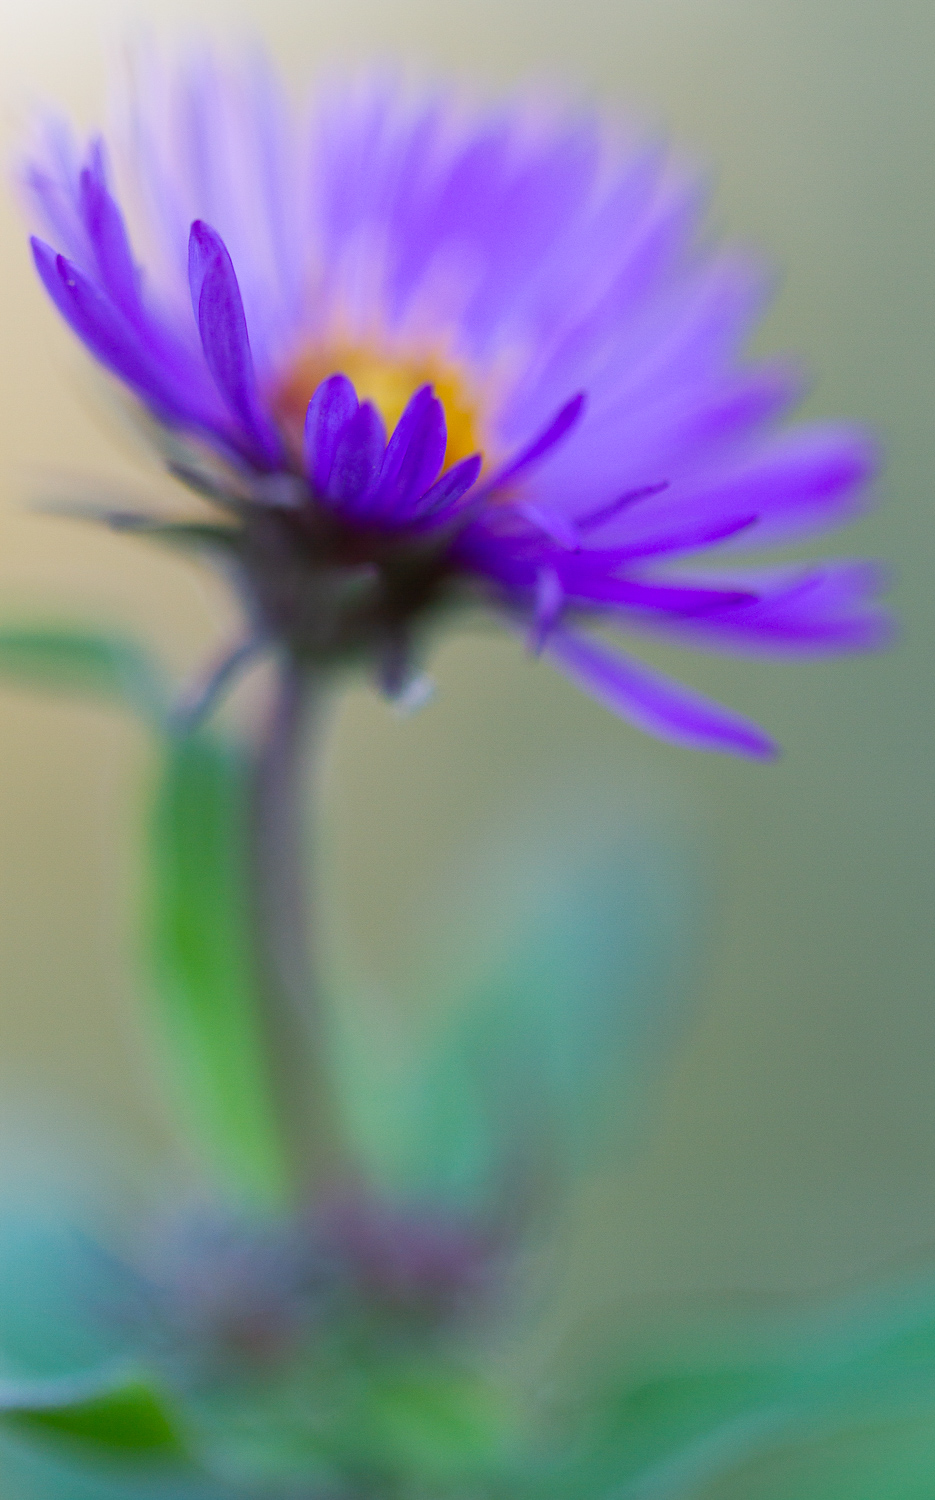 purple flower - 5 Ways to Make Extraordinary Photographs of Ordinary Subjects